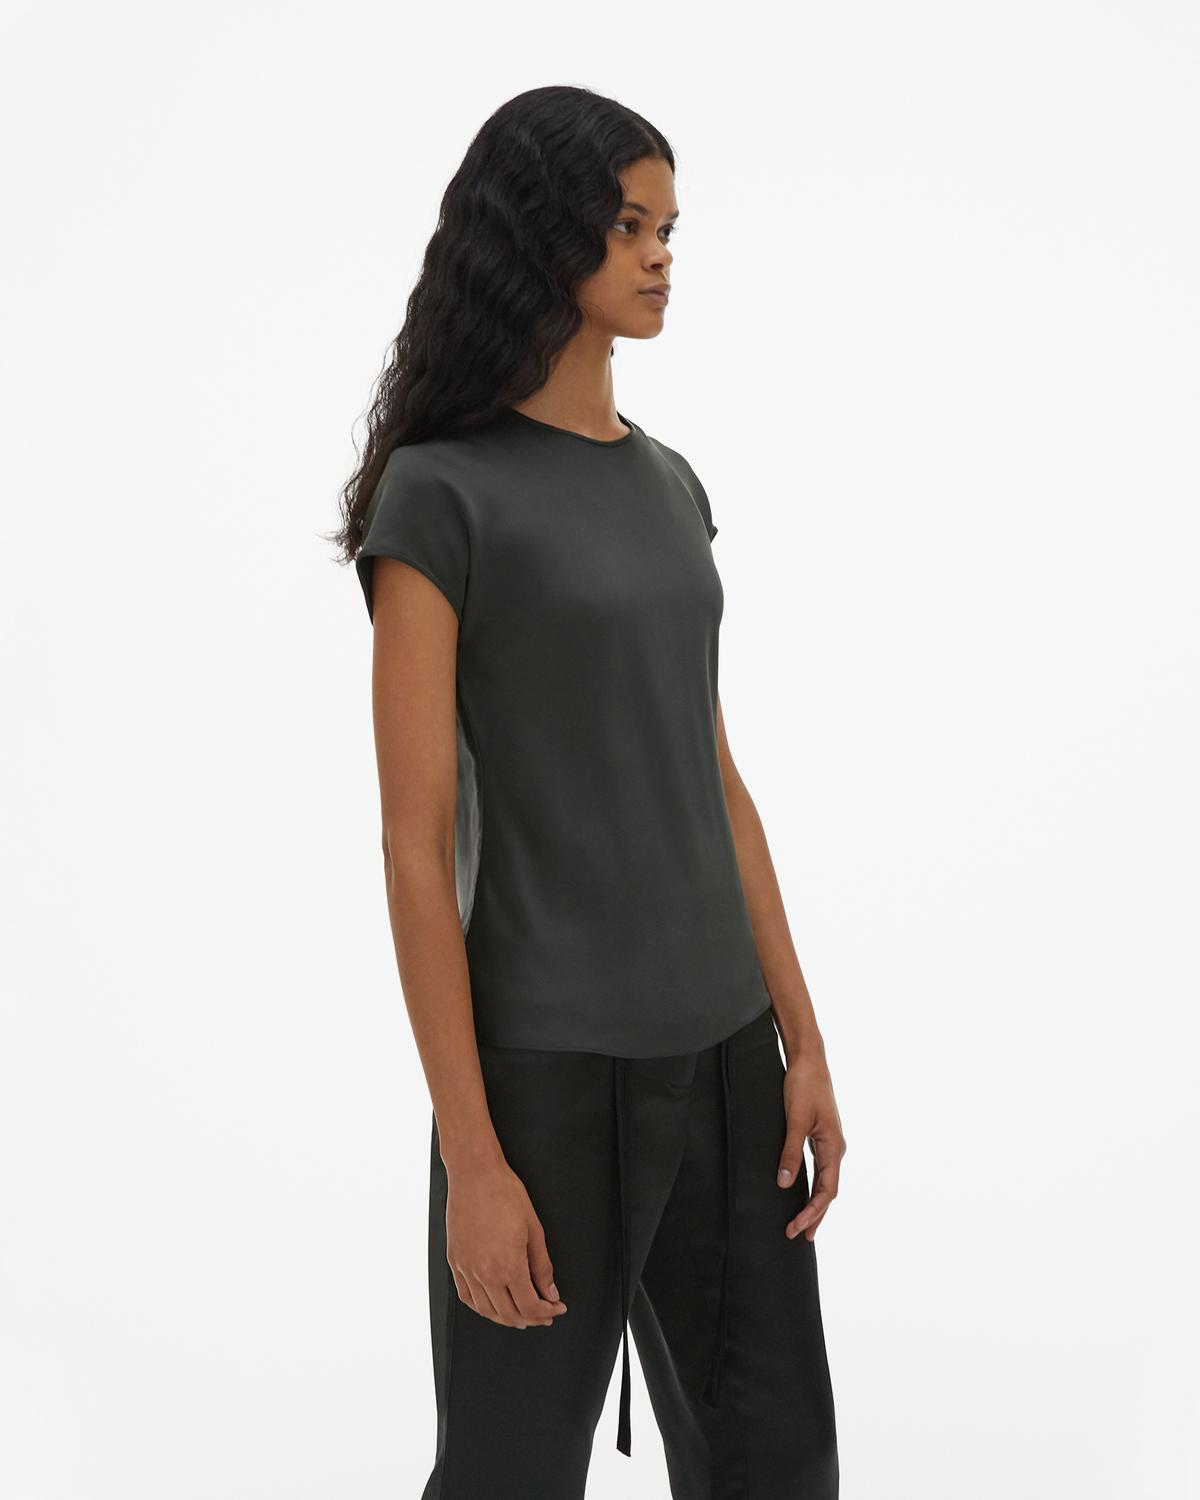 Viscose Cap Sleeve Top